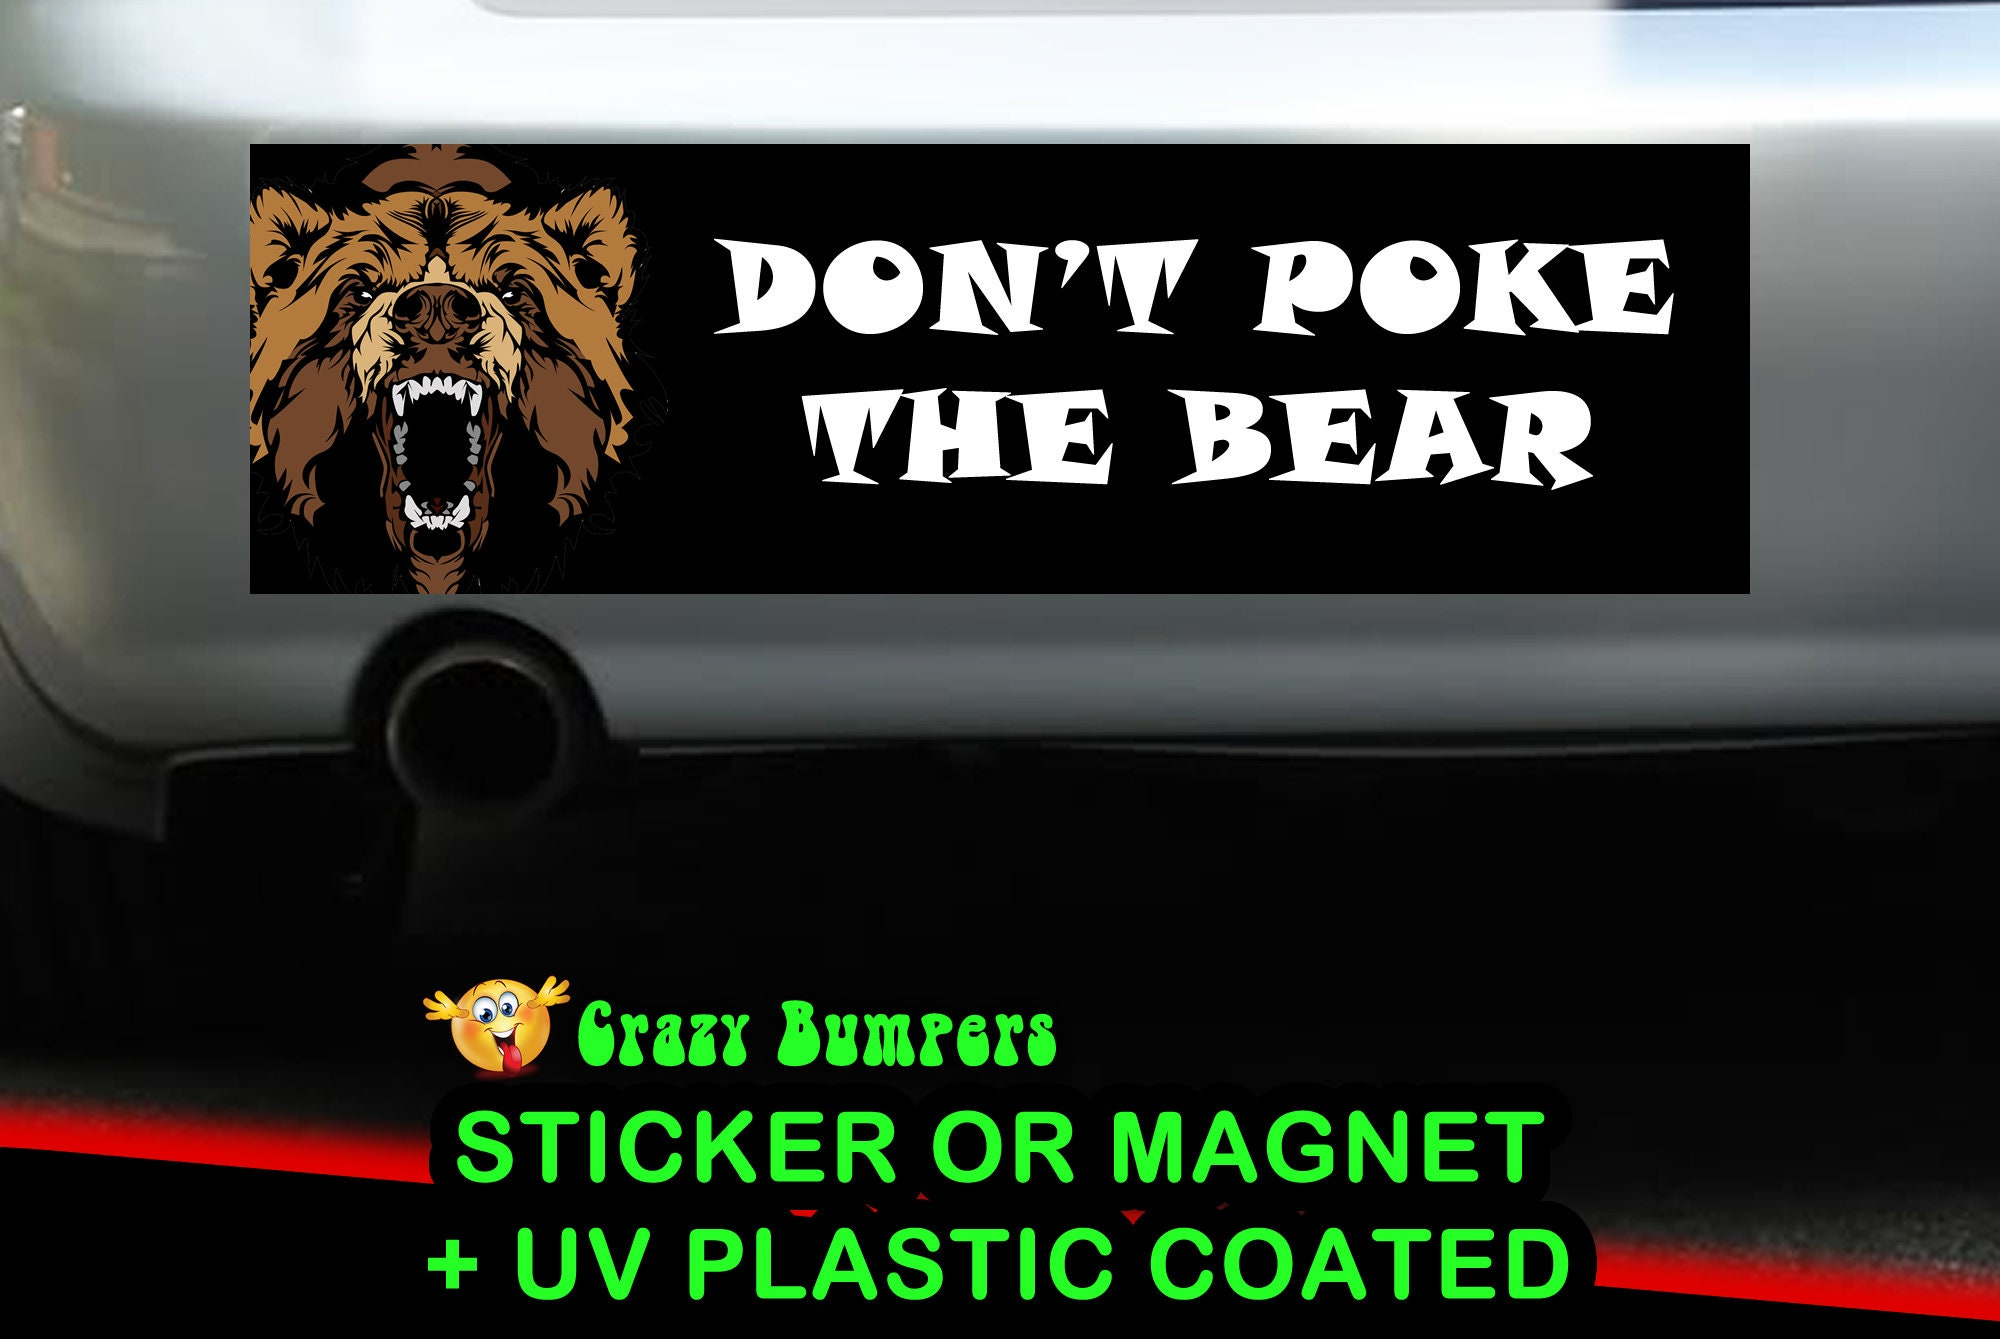 CAD$9.74 - Don't Poke The Bear Bumper Sticker 10 x 3 Bumper Sticker or Magnetic Bumper Sticker Available